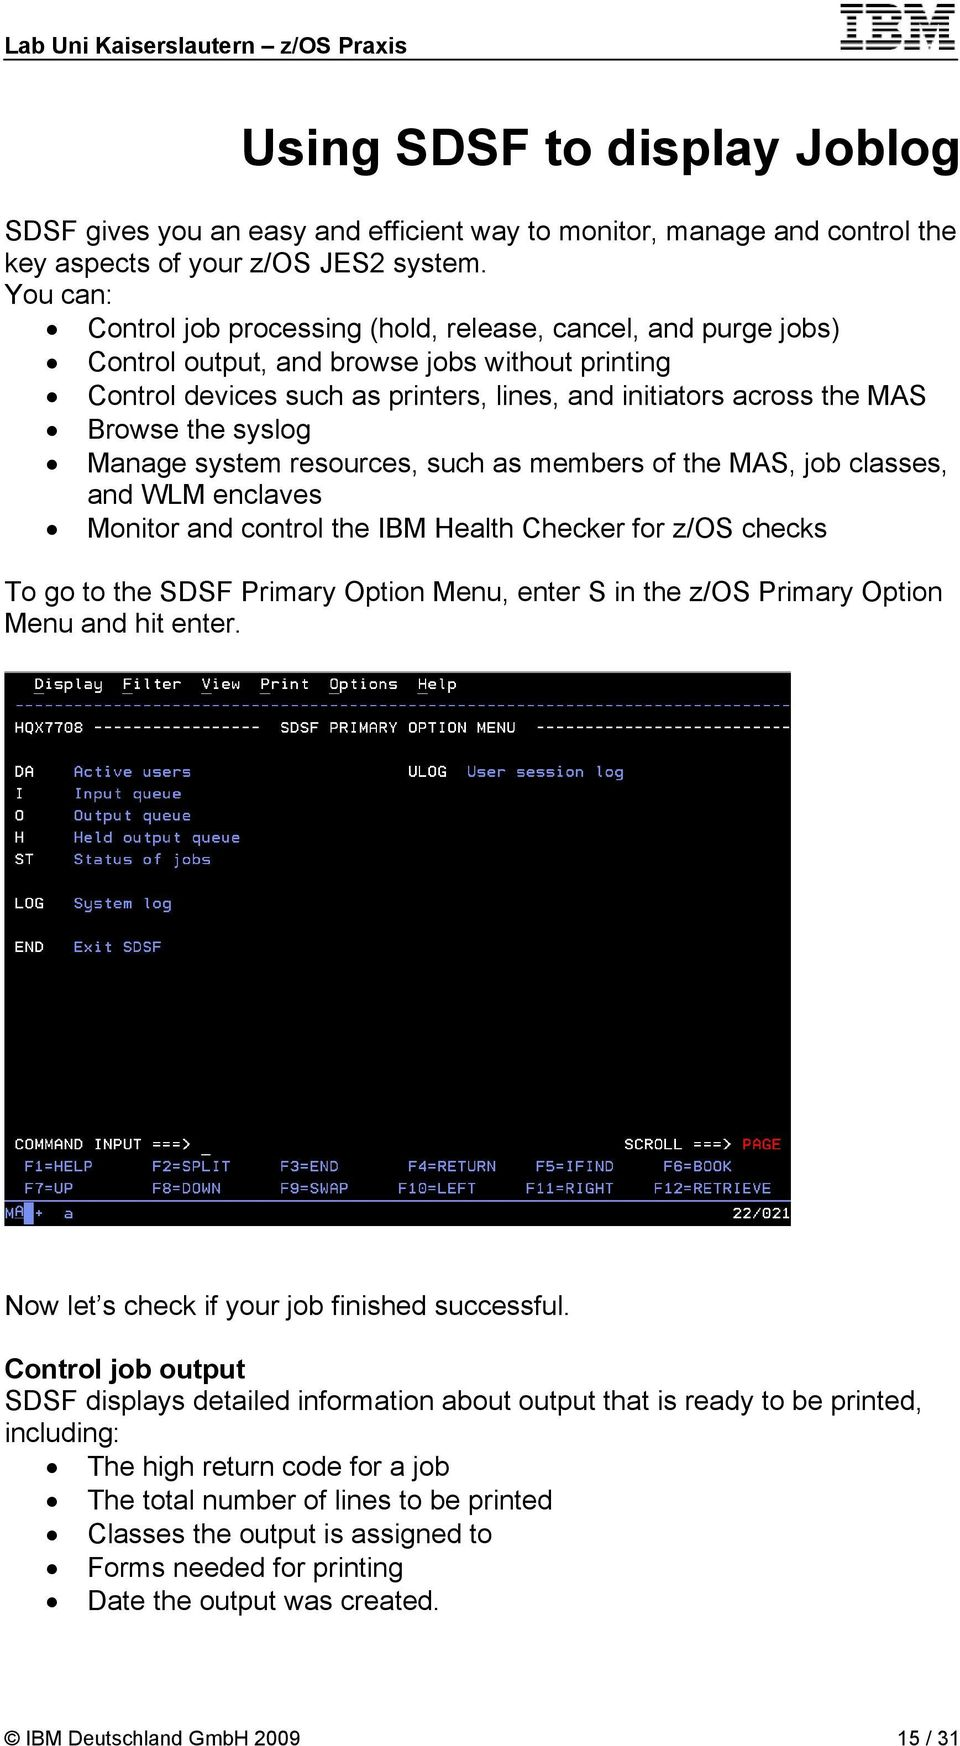 the syslog Manage system resources, such as members of the MAS, job classes, and WLM enclaves Monitor and control the IBM Health Checker for z/os checks To go to the SDSF Primary Option Menu, enter S